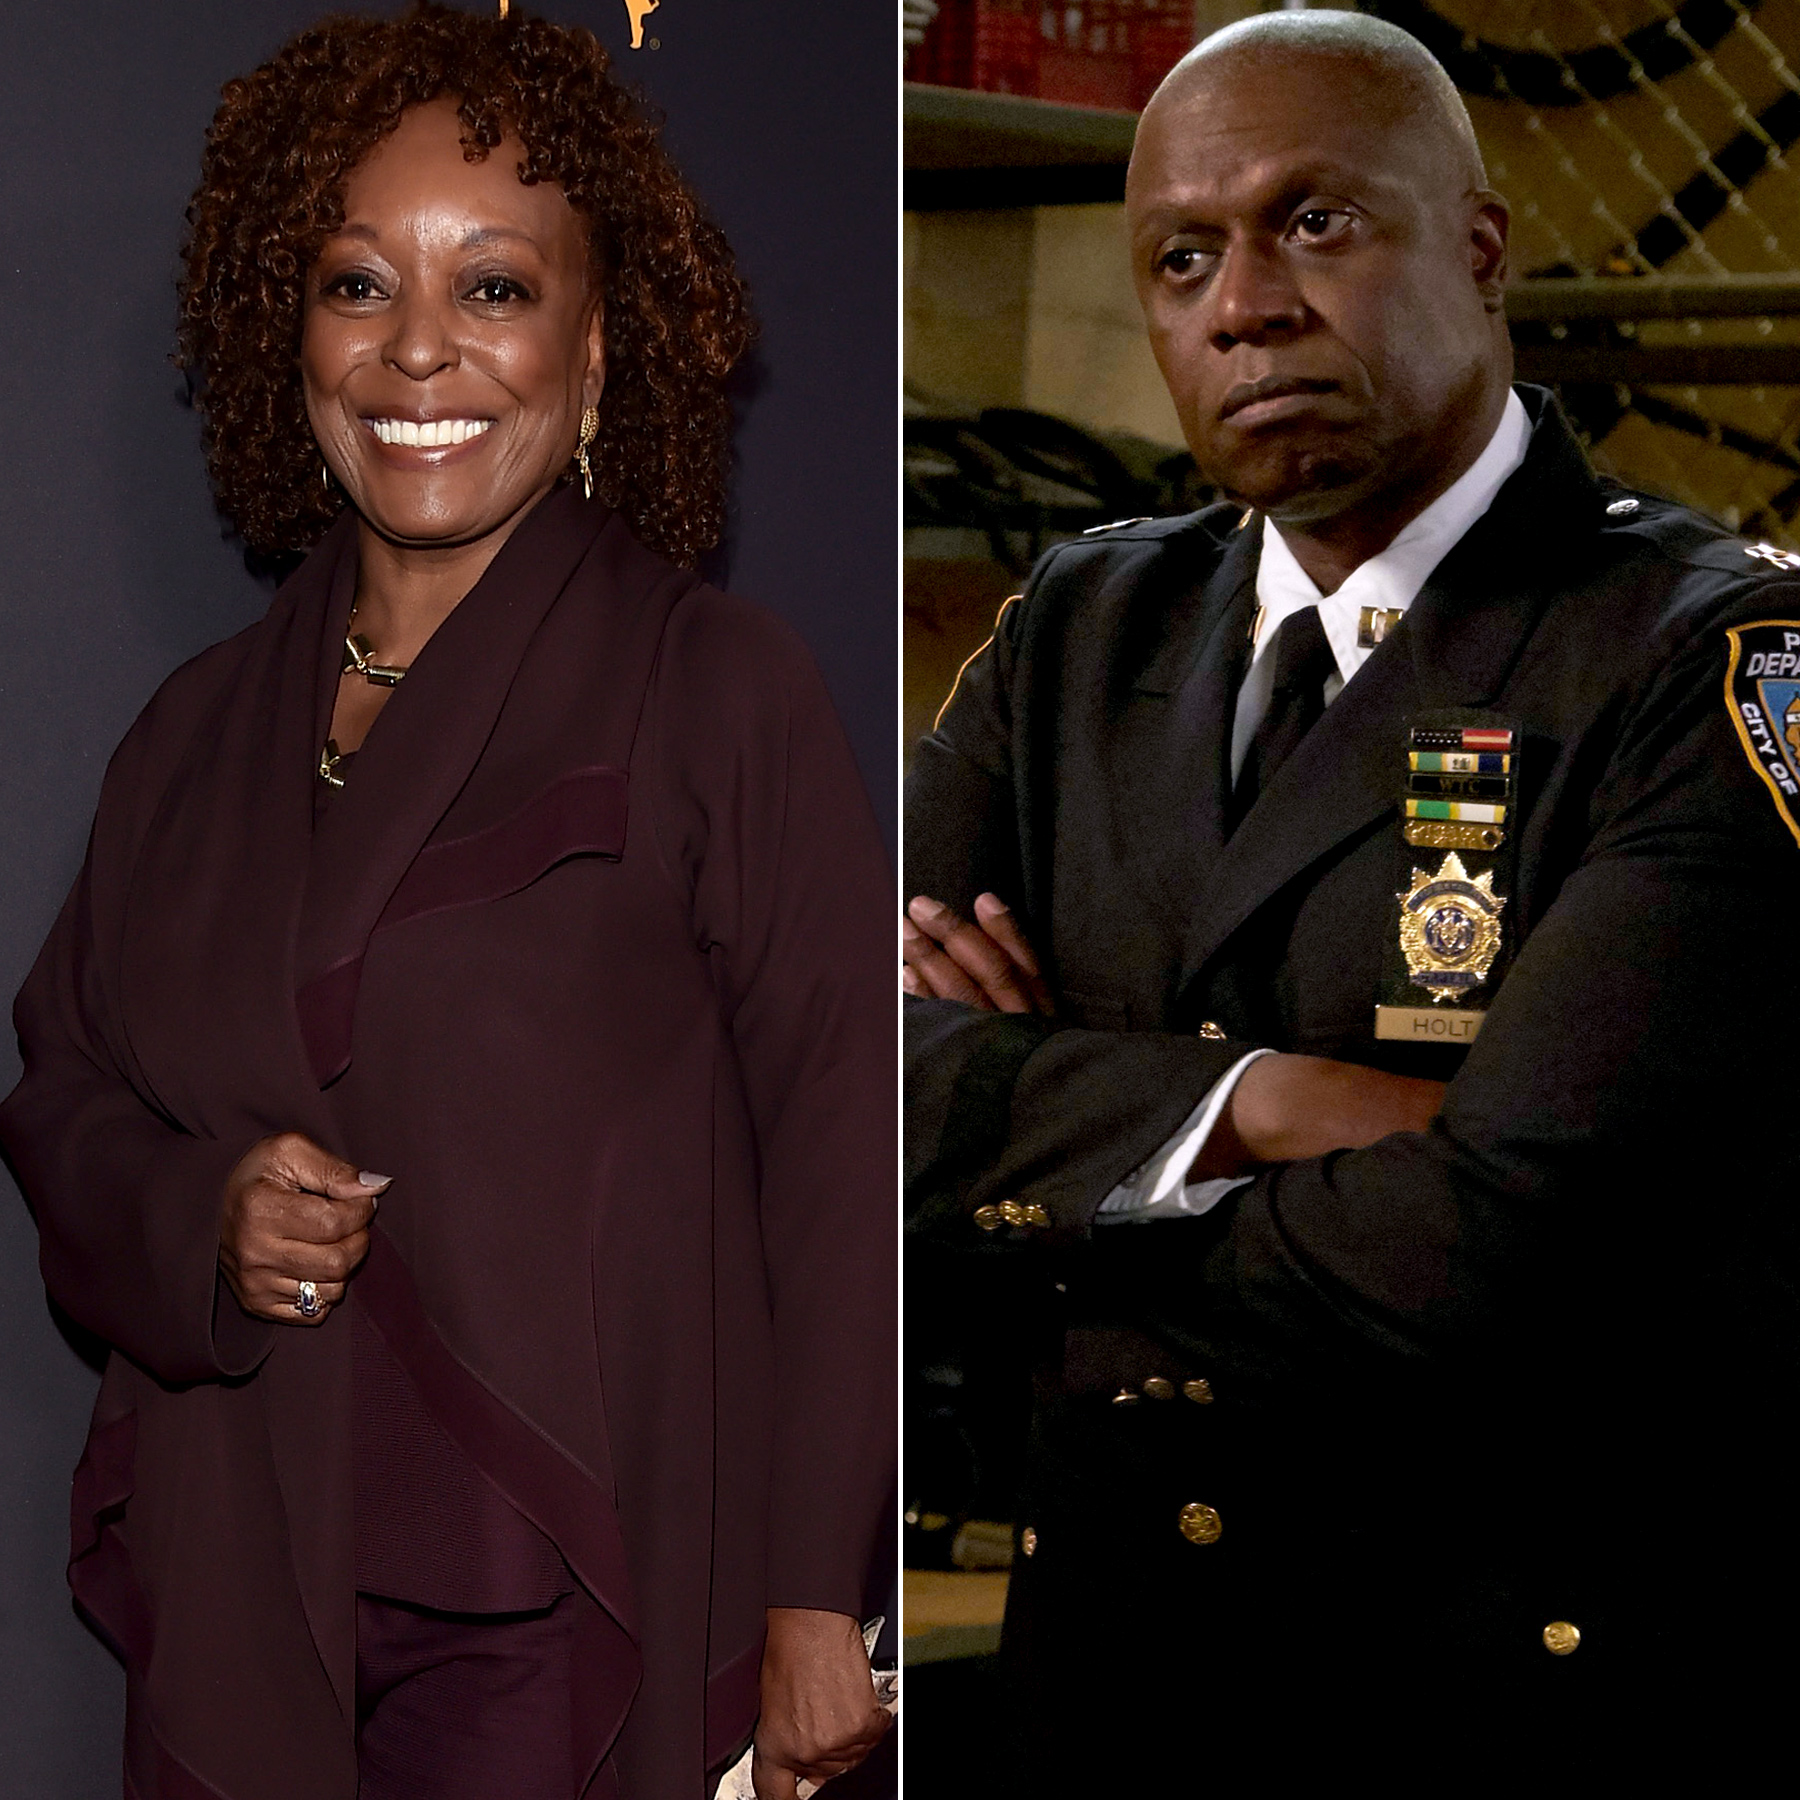 L. Scott Caldwell and Andre Braugher